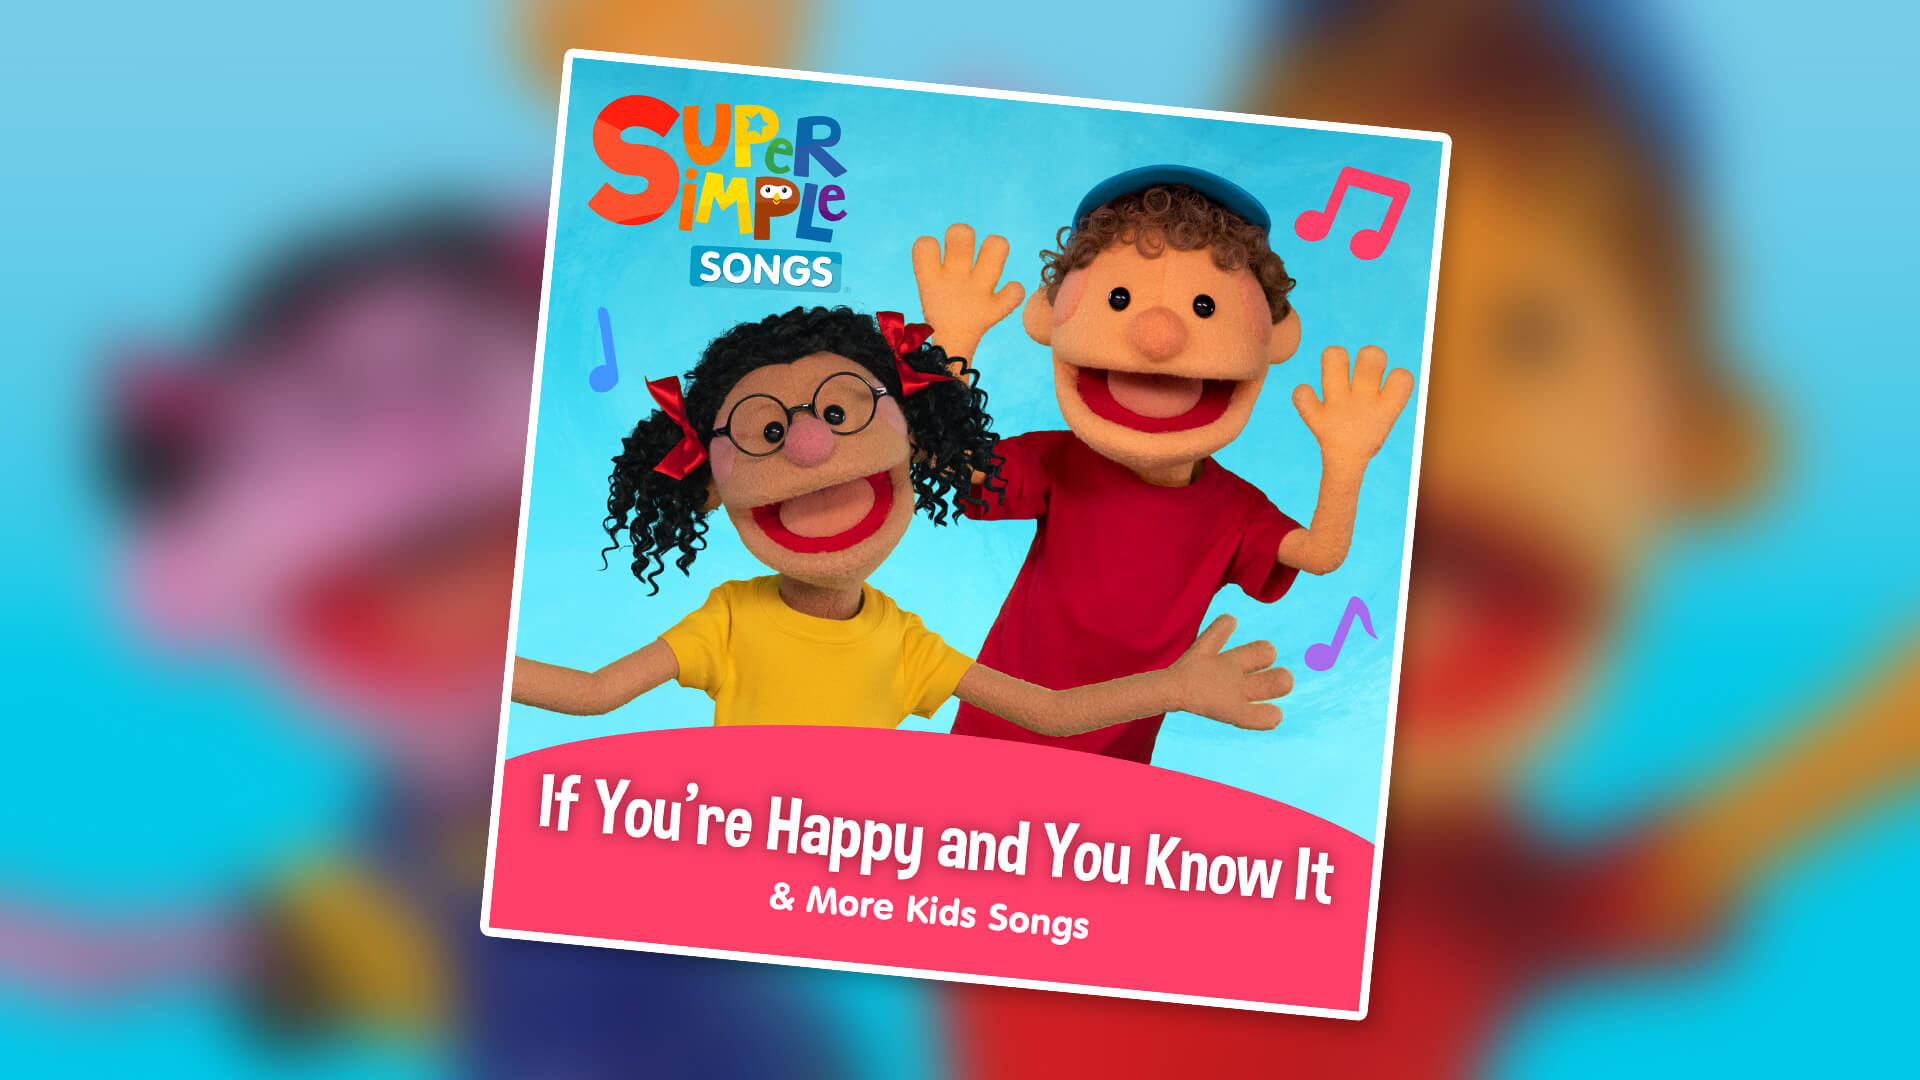 If You're Happy And You Know It & More Kids Songs